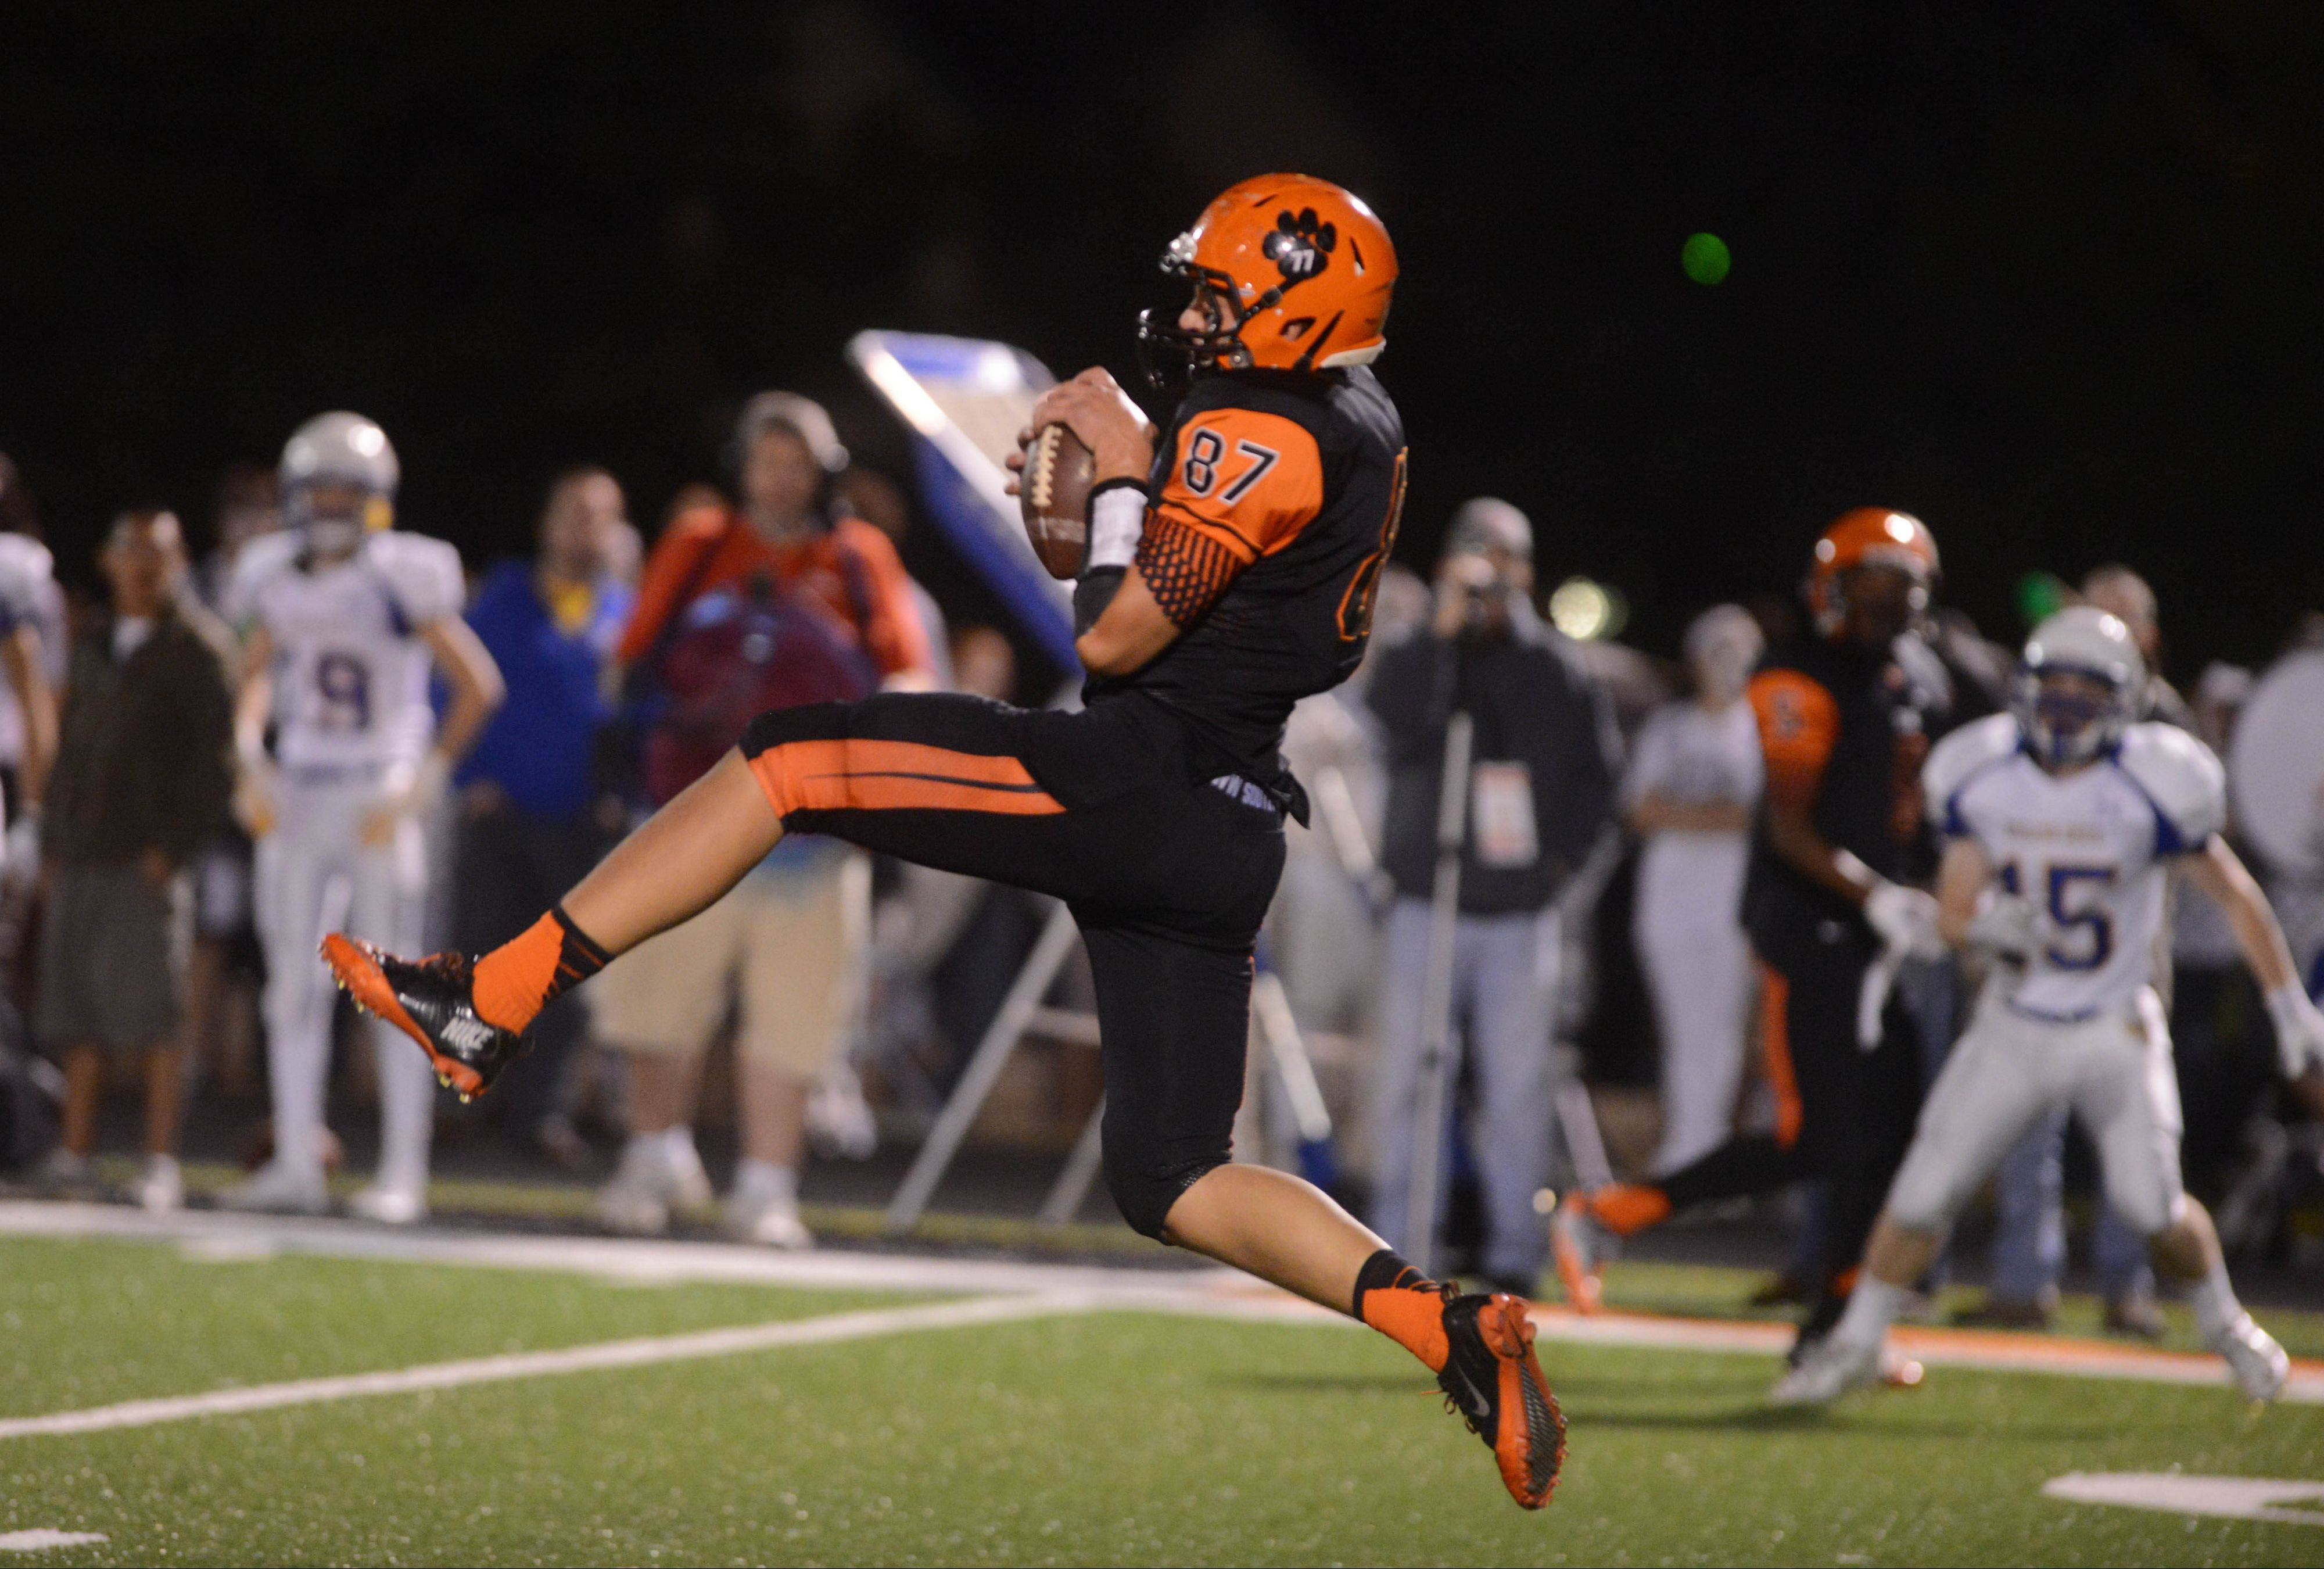 Connor Ostrander of Wheaton Warrenville South pulls down a pass against visiting Wheaton North on Friday.